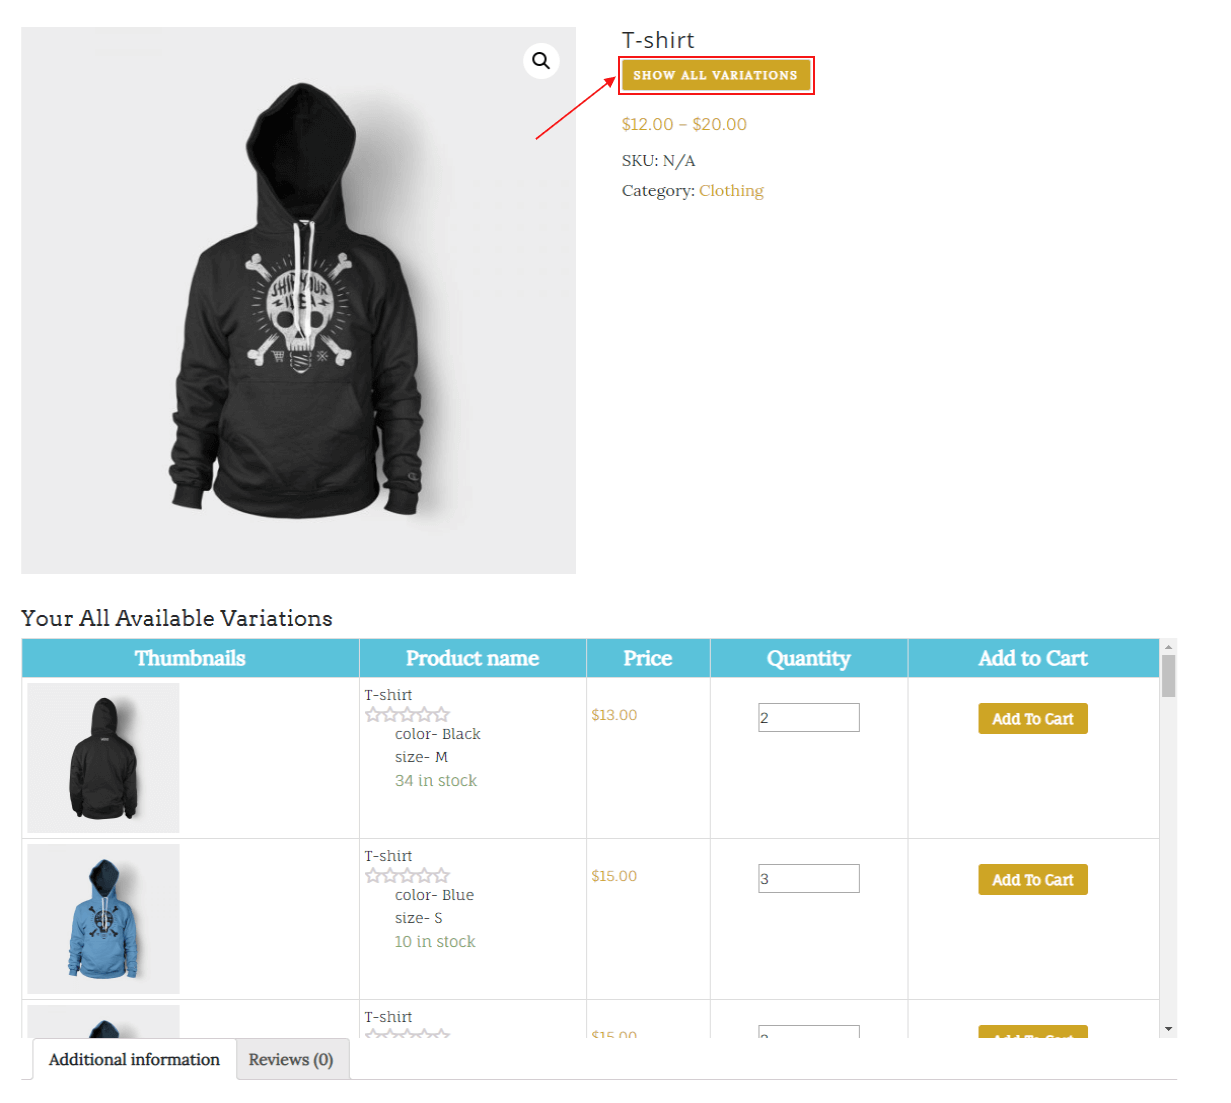 woocommerce-table-view-for-variations-table-view-1